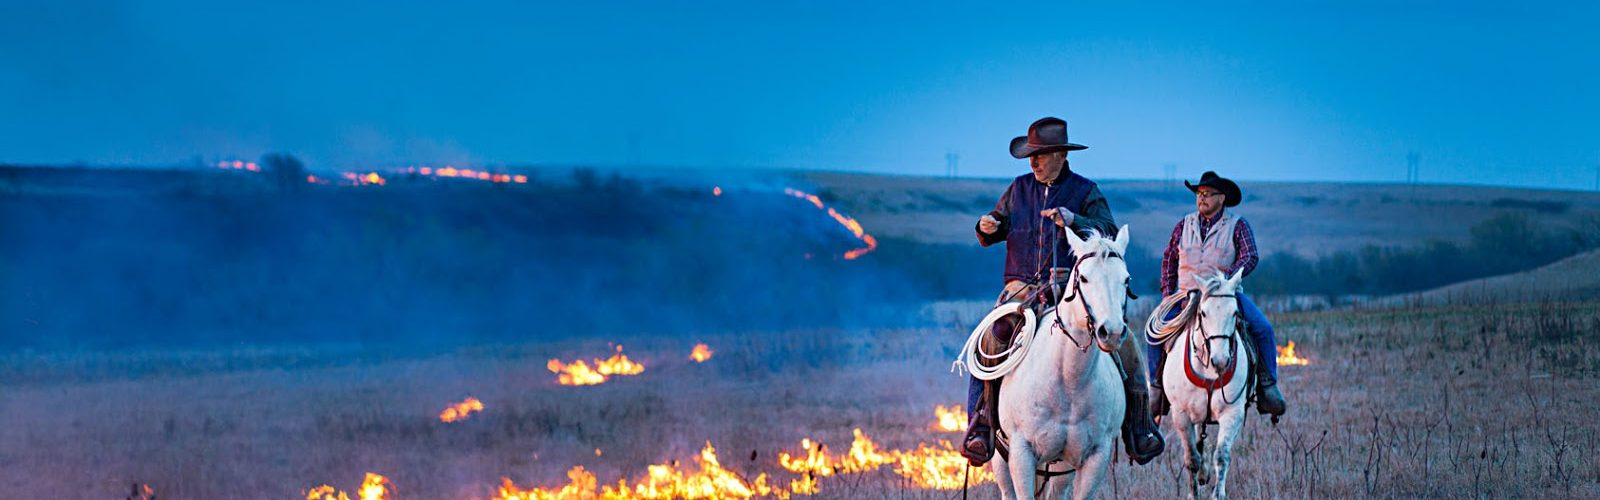 Annual Prairie Fire, Flint Hills, Kansas by Ryan Donnell.